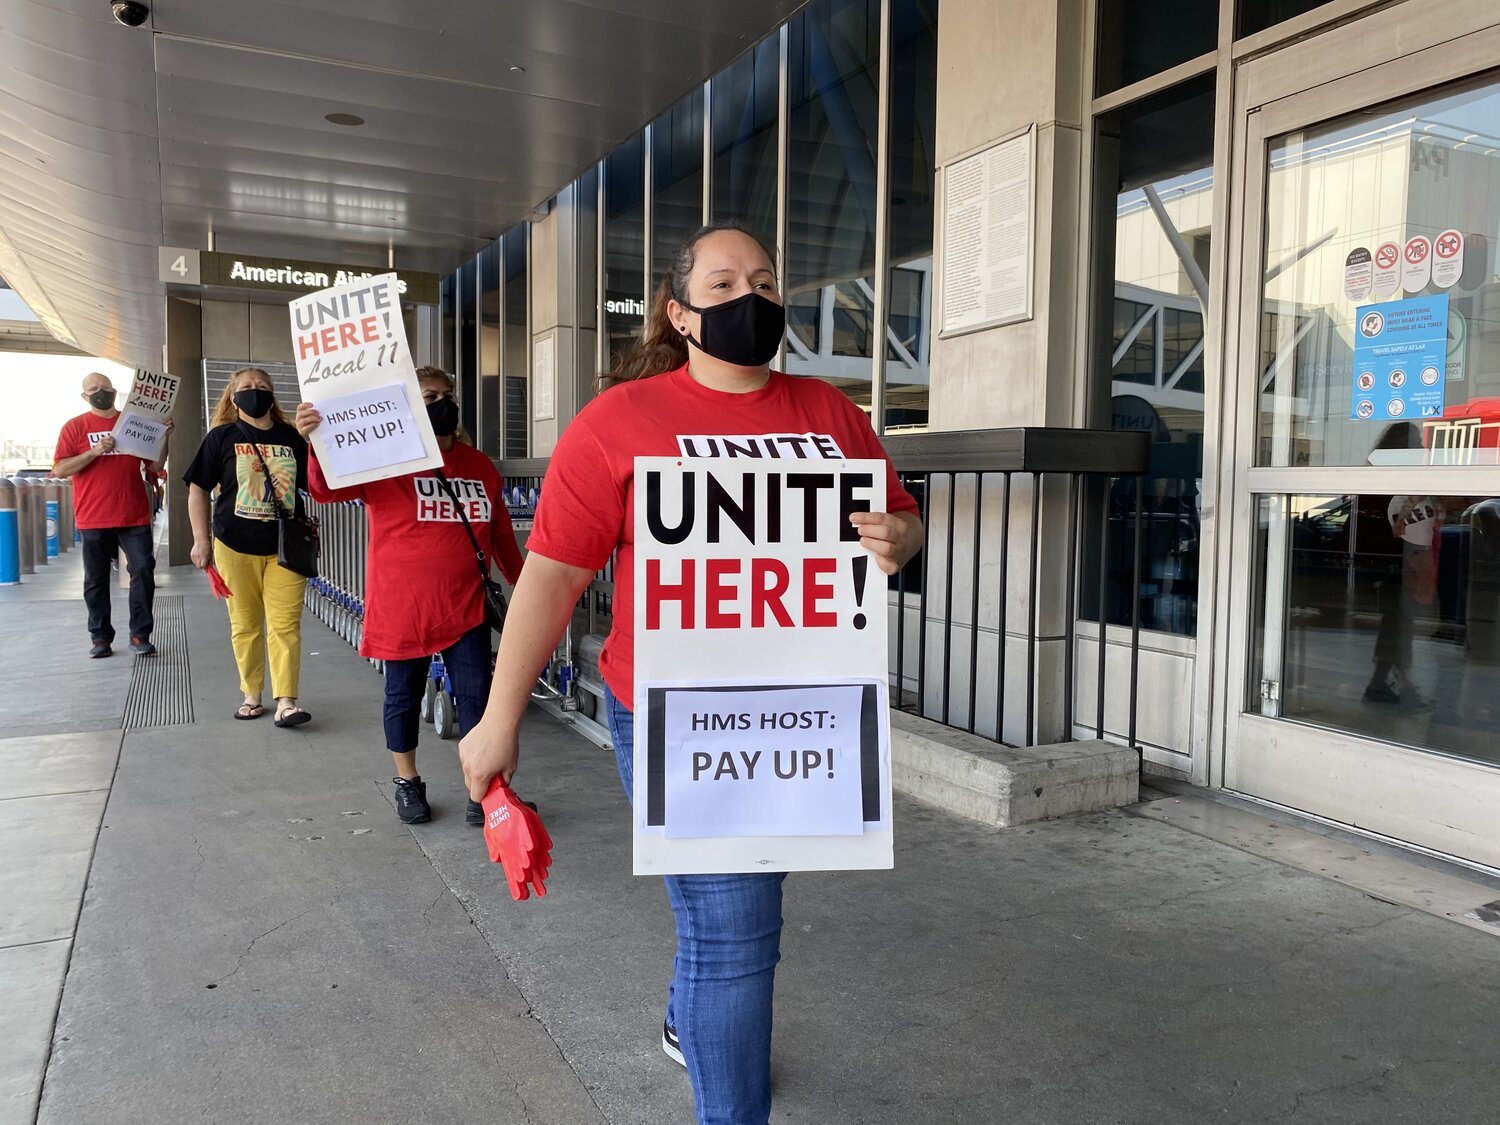 Press Release Lax Workers Protest Alleged Violation Of Lax Minimum Wage Law Activists Claim Hms Host Is Ineligible For Rent Relief Unite Here